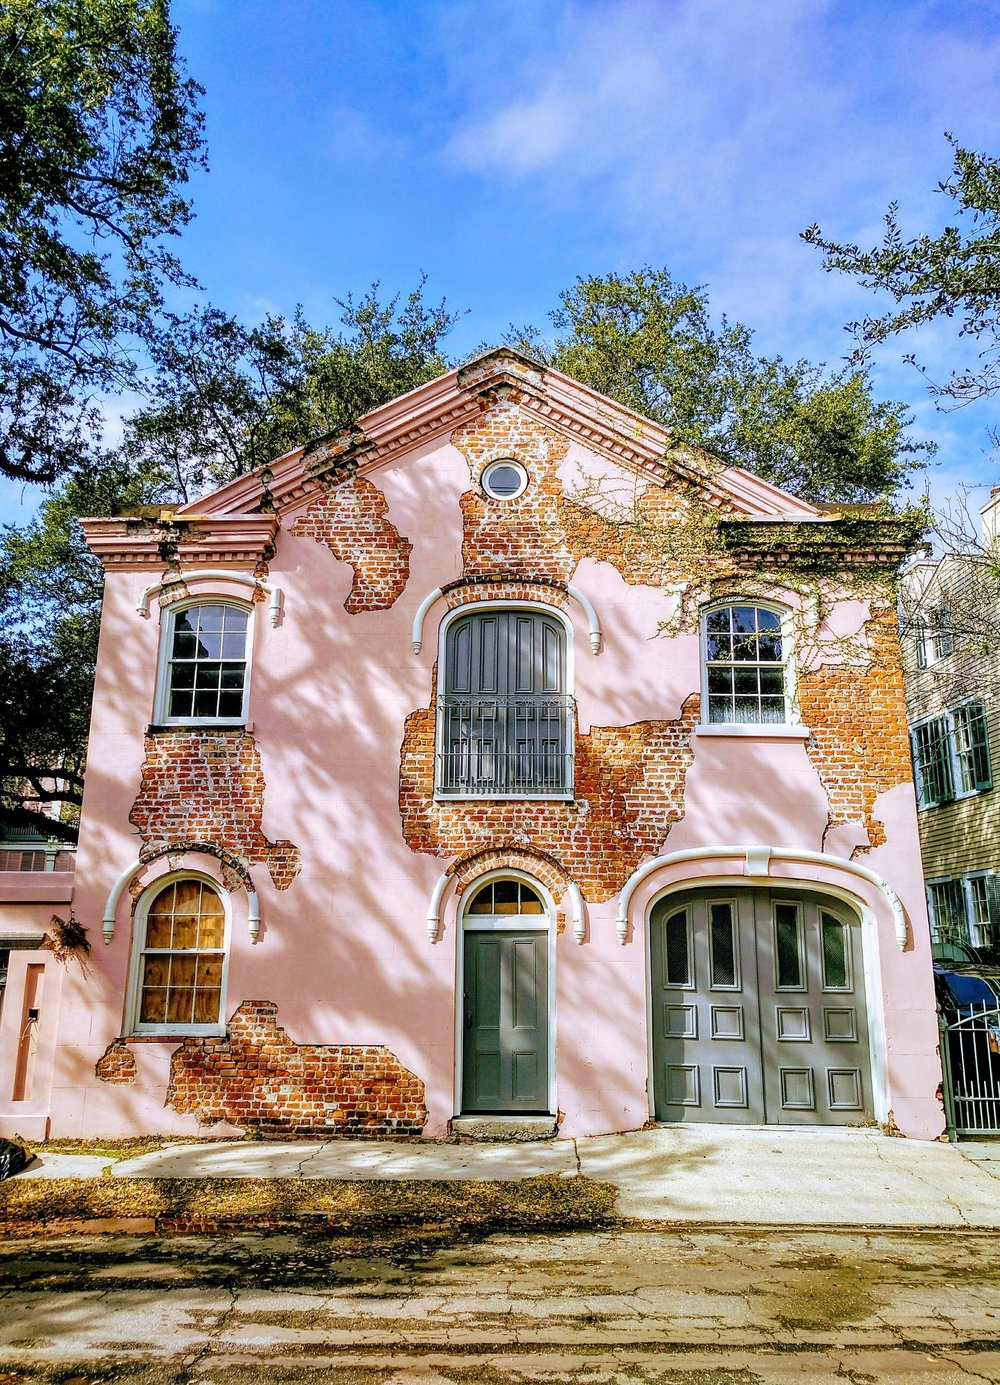 Clockwise from Left: Historic architecture of the French Quarter, Beautifully aging façades of New Orleans (photo: Joaquin), French Quarter Square (photo: Llambrano)